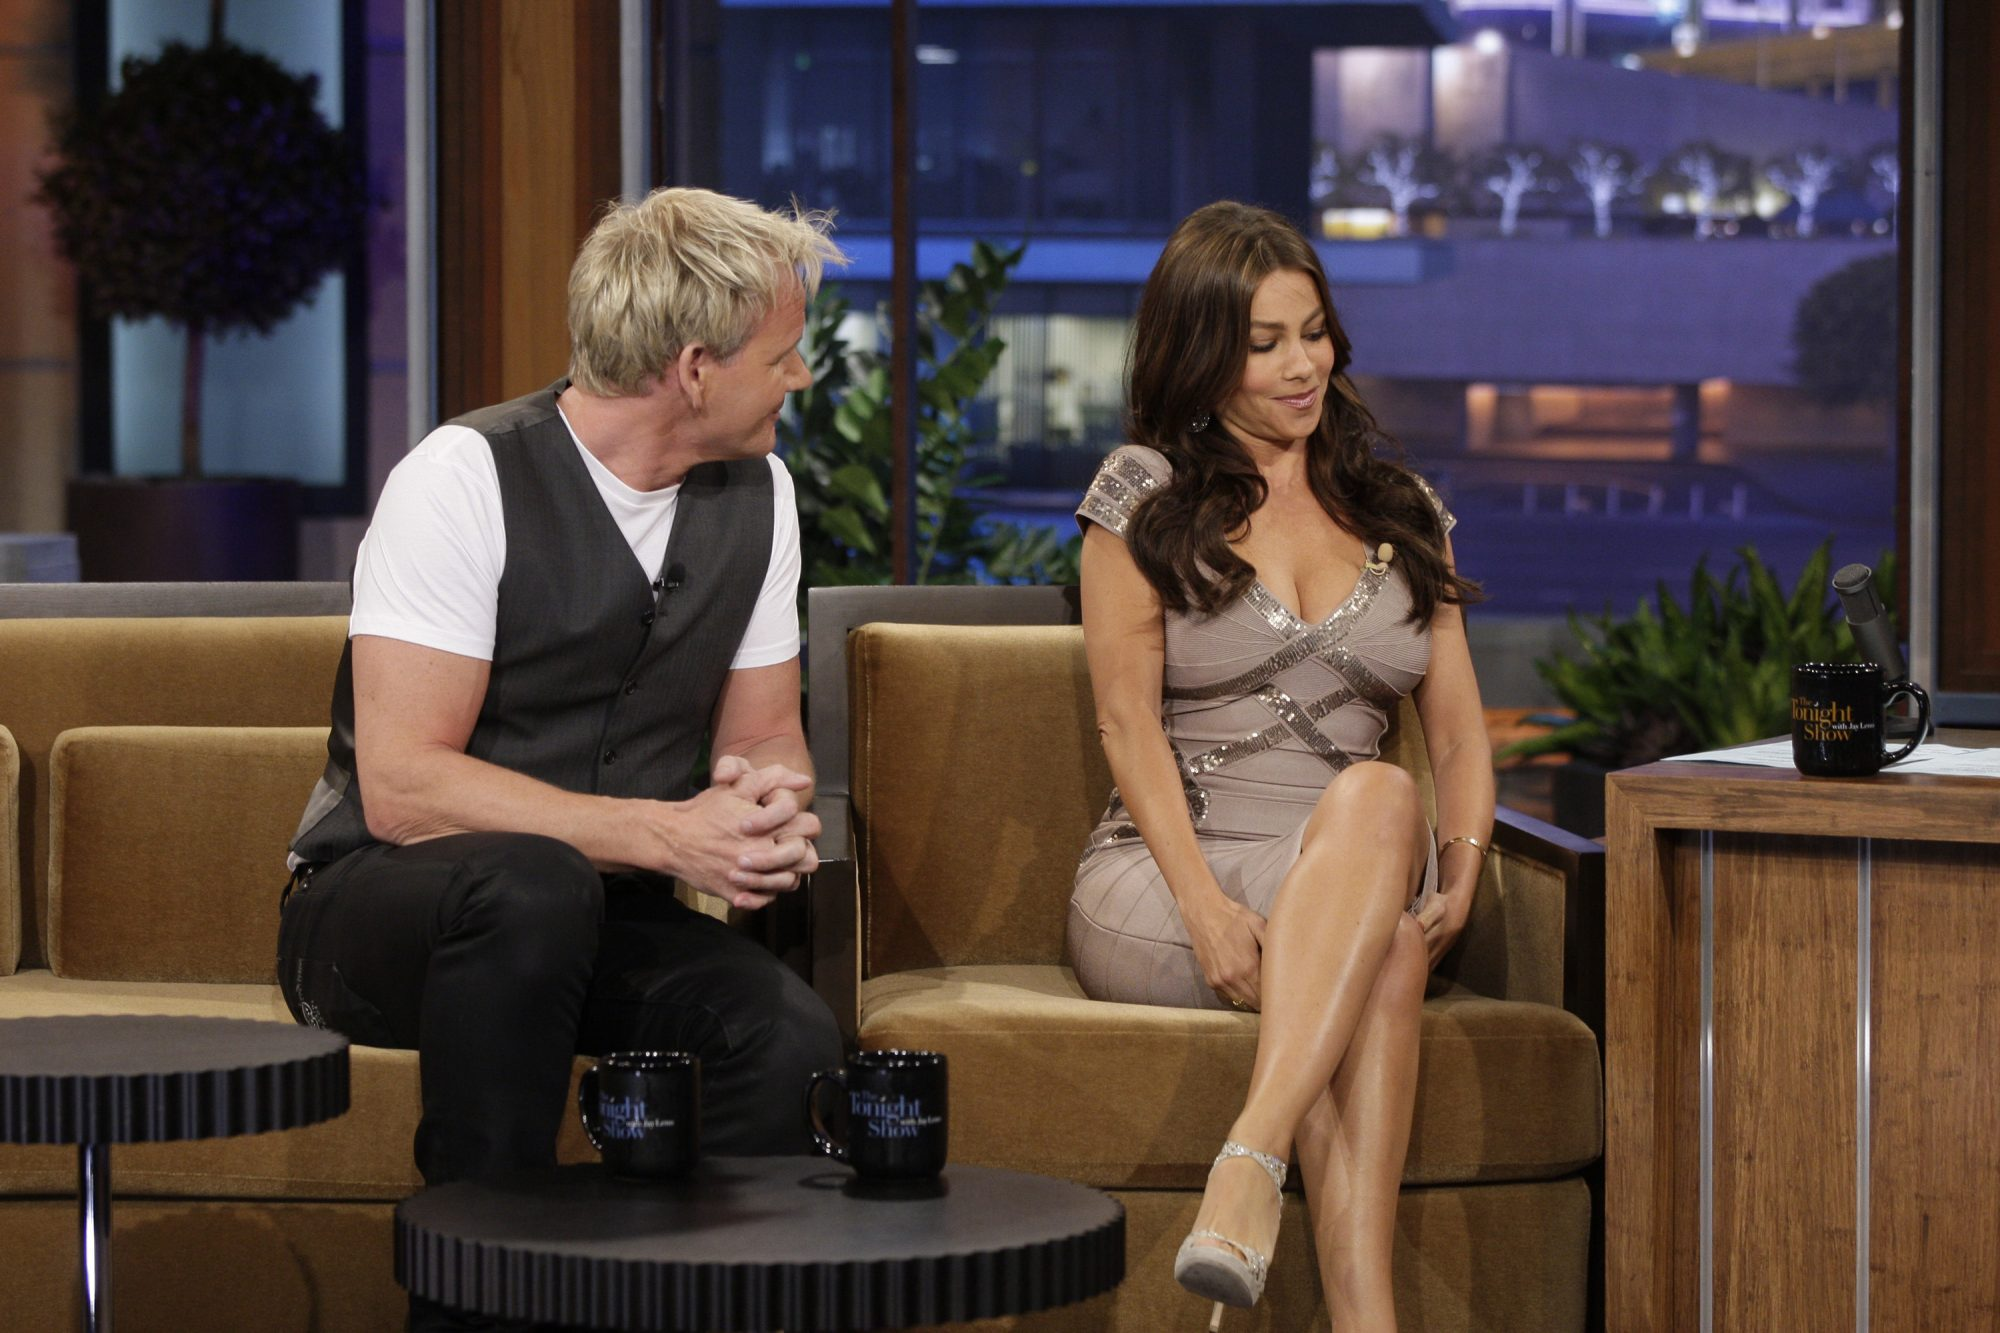 Gordon Ramsay Takes Some Heat Over Resurfaced Interview With Sofia Vergara